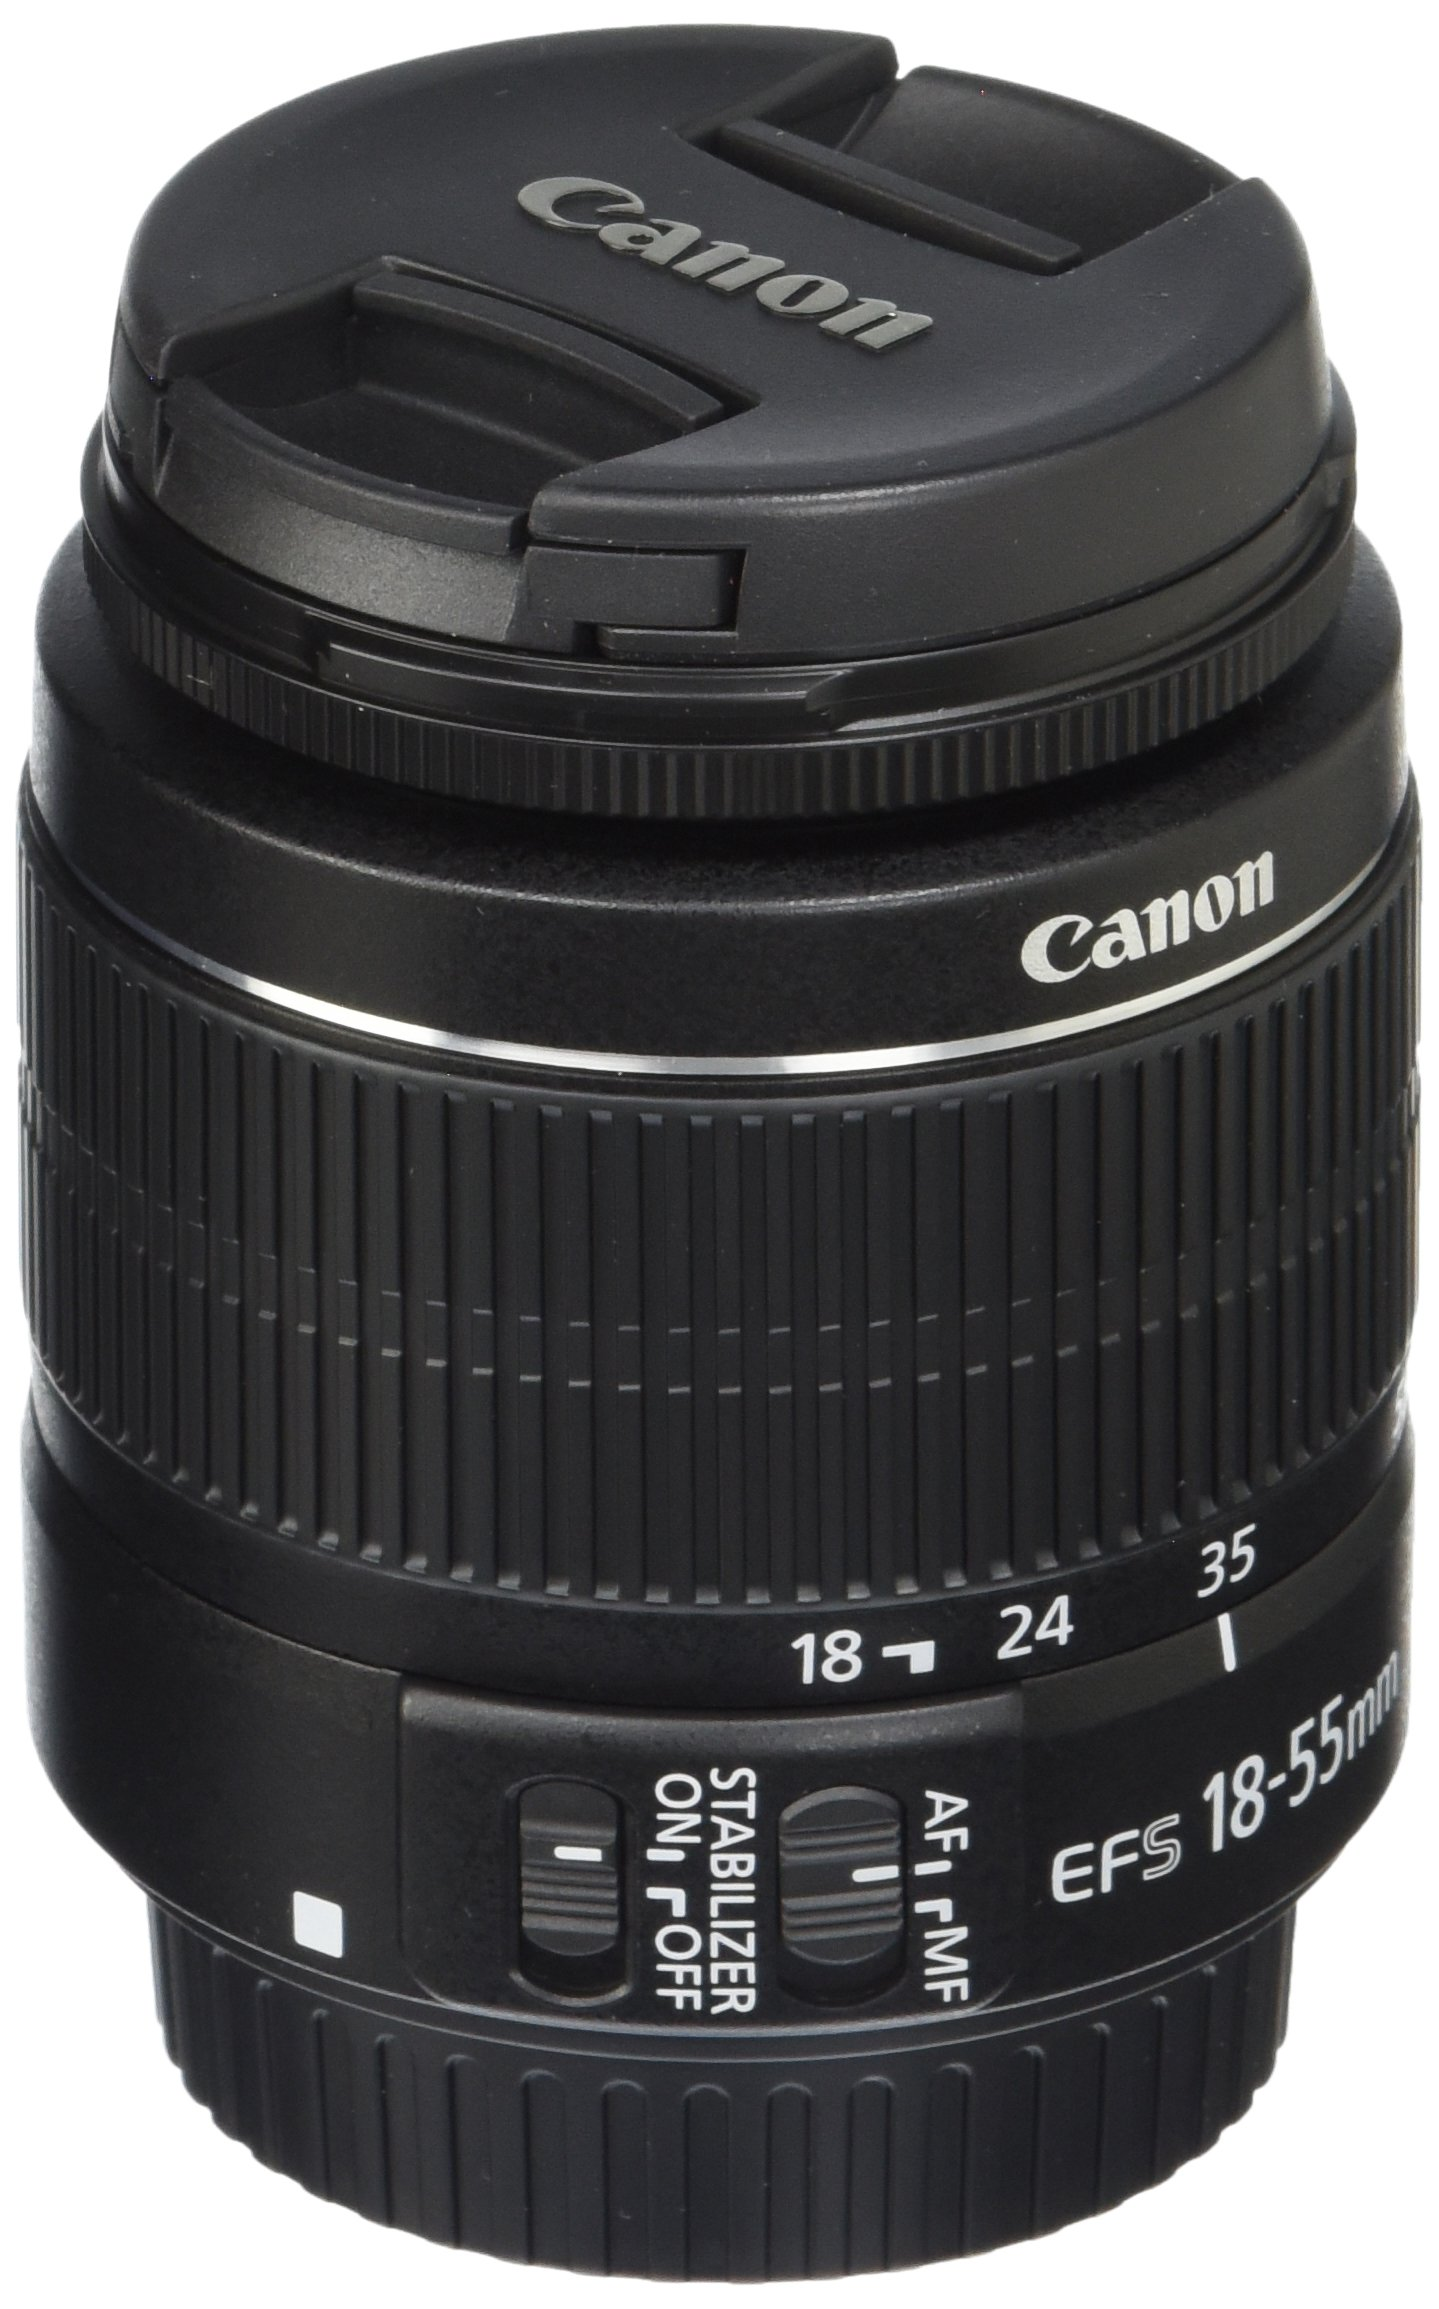 Canon EF-S 18-55mm f/3.5-5.6 IS II SLR Lens by Canon (Image #2)